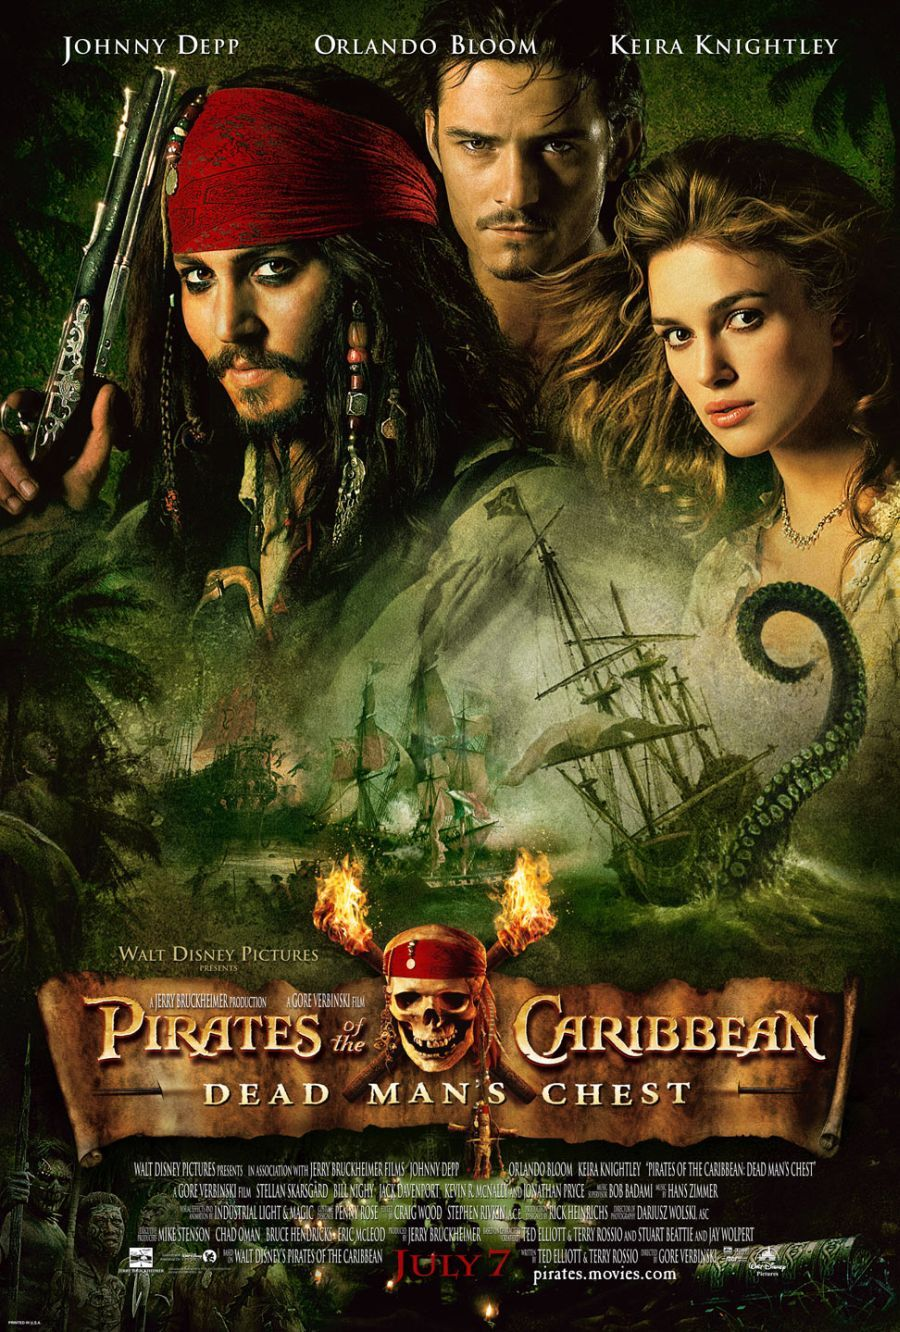 「Pirates of the Caribbean: Dead Man's Chest poster」の画像検索結果